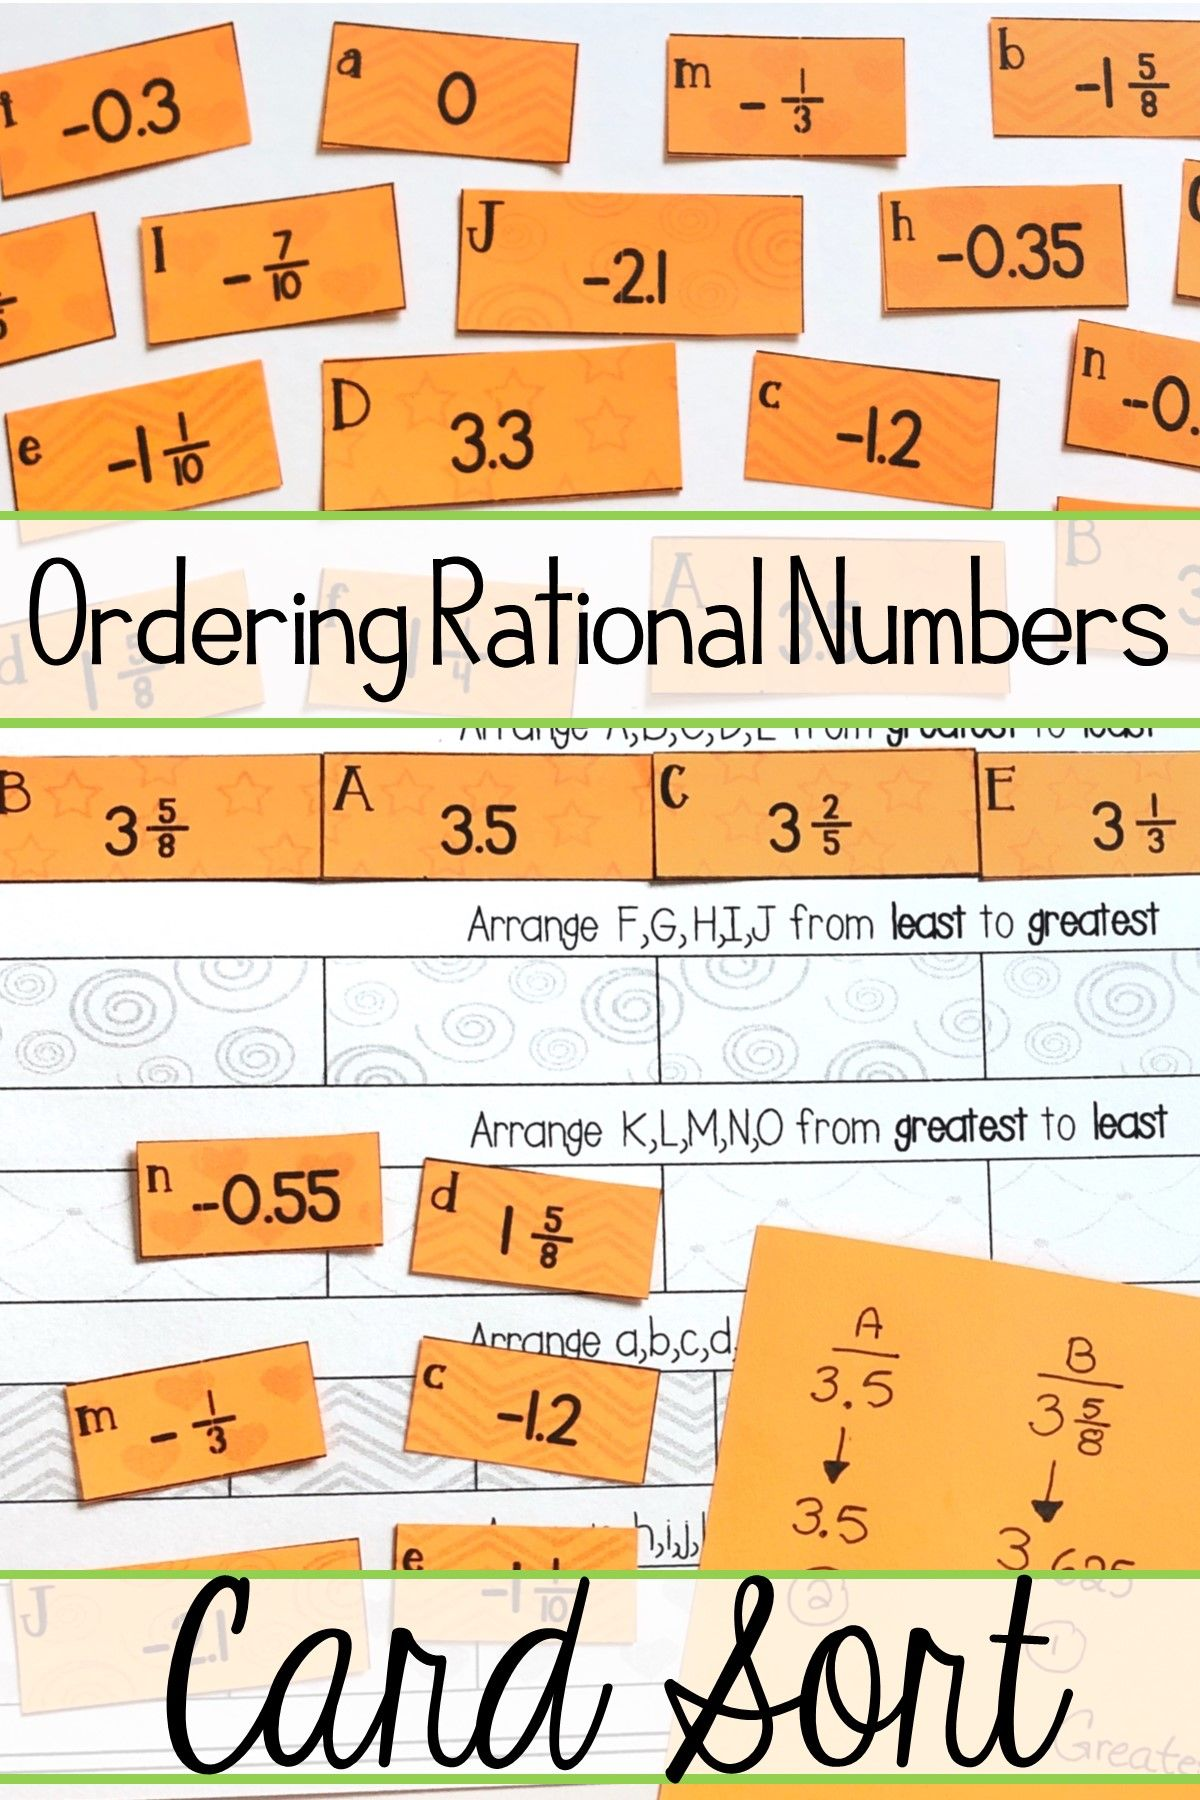 Ordering Rational Numbers Activity (Positive and Negative